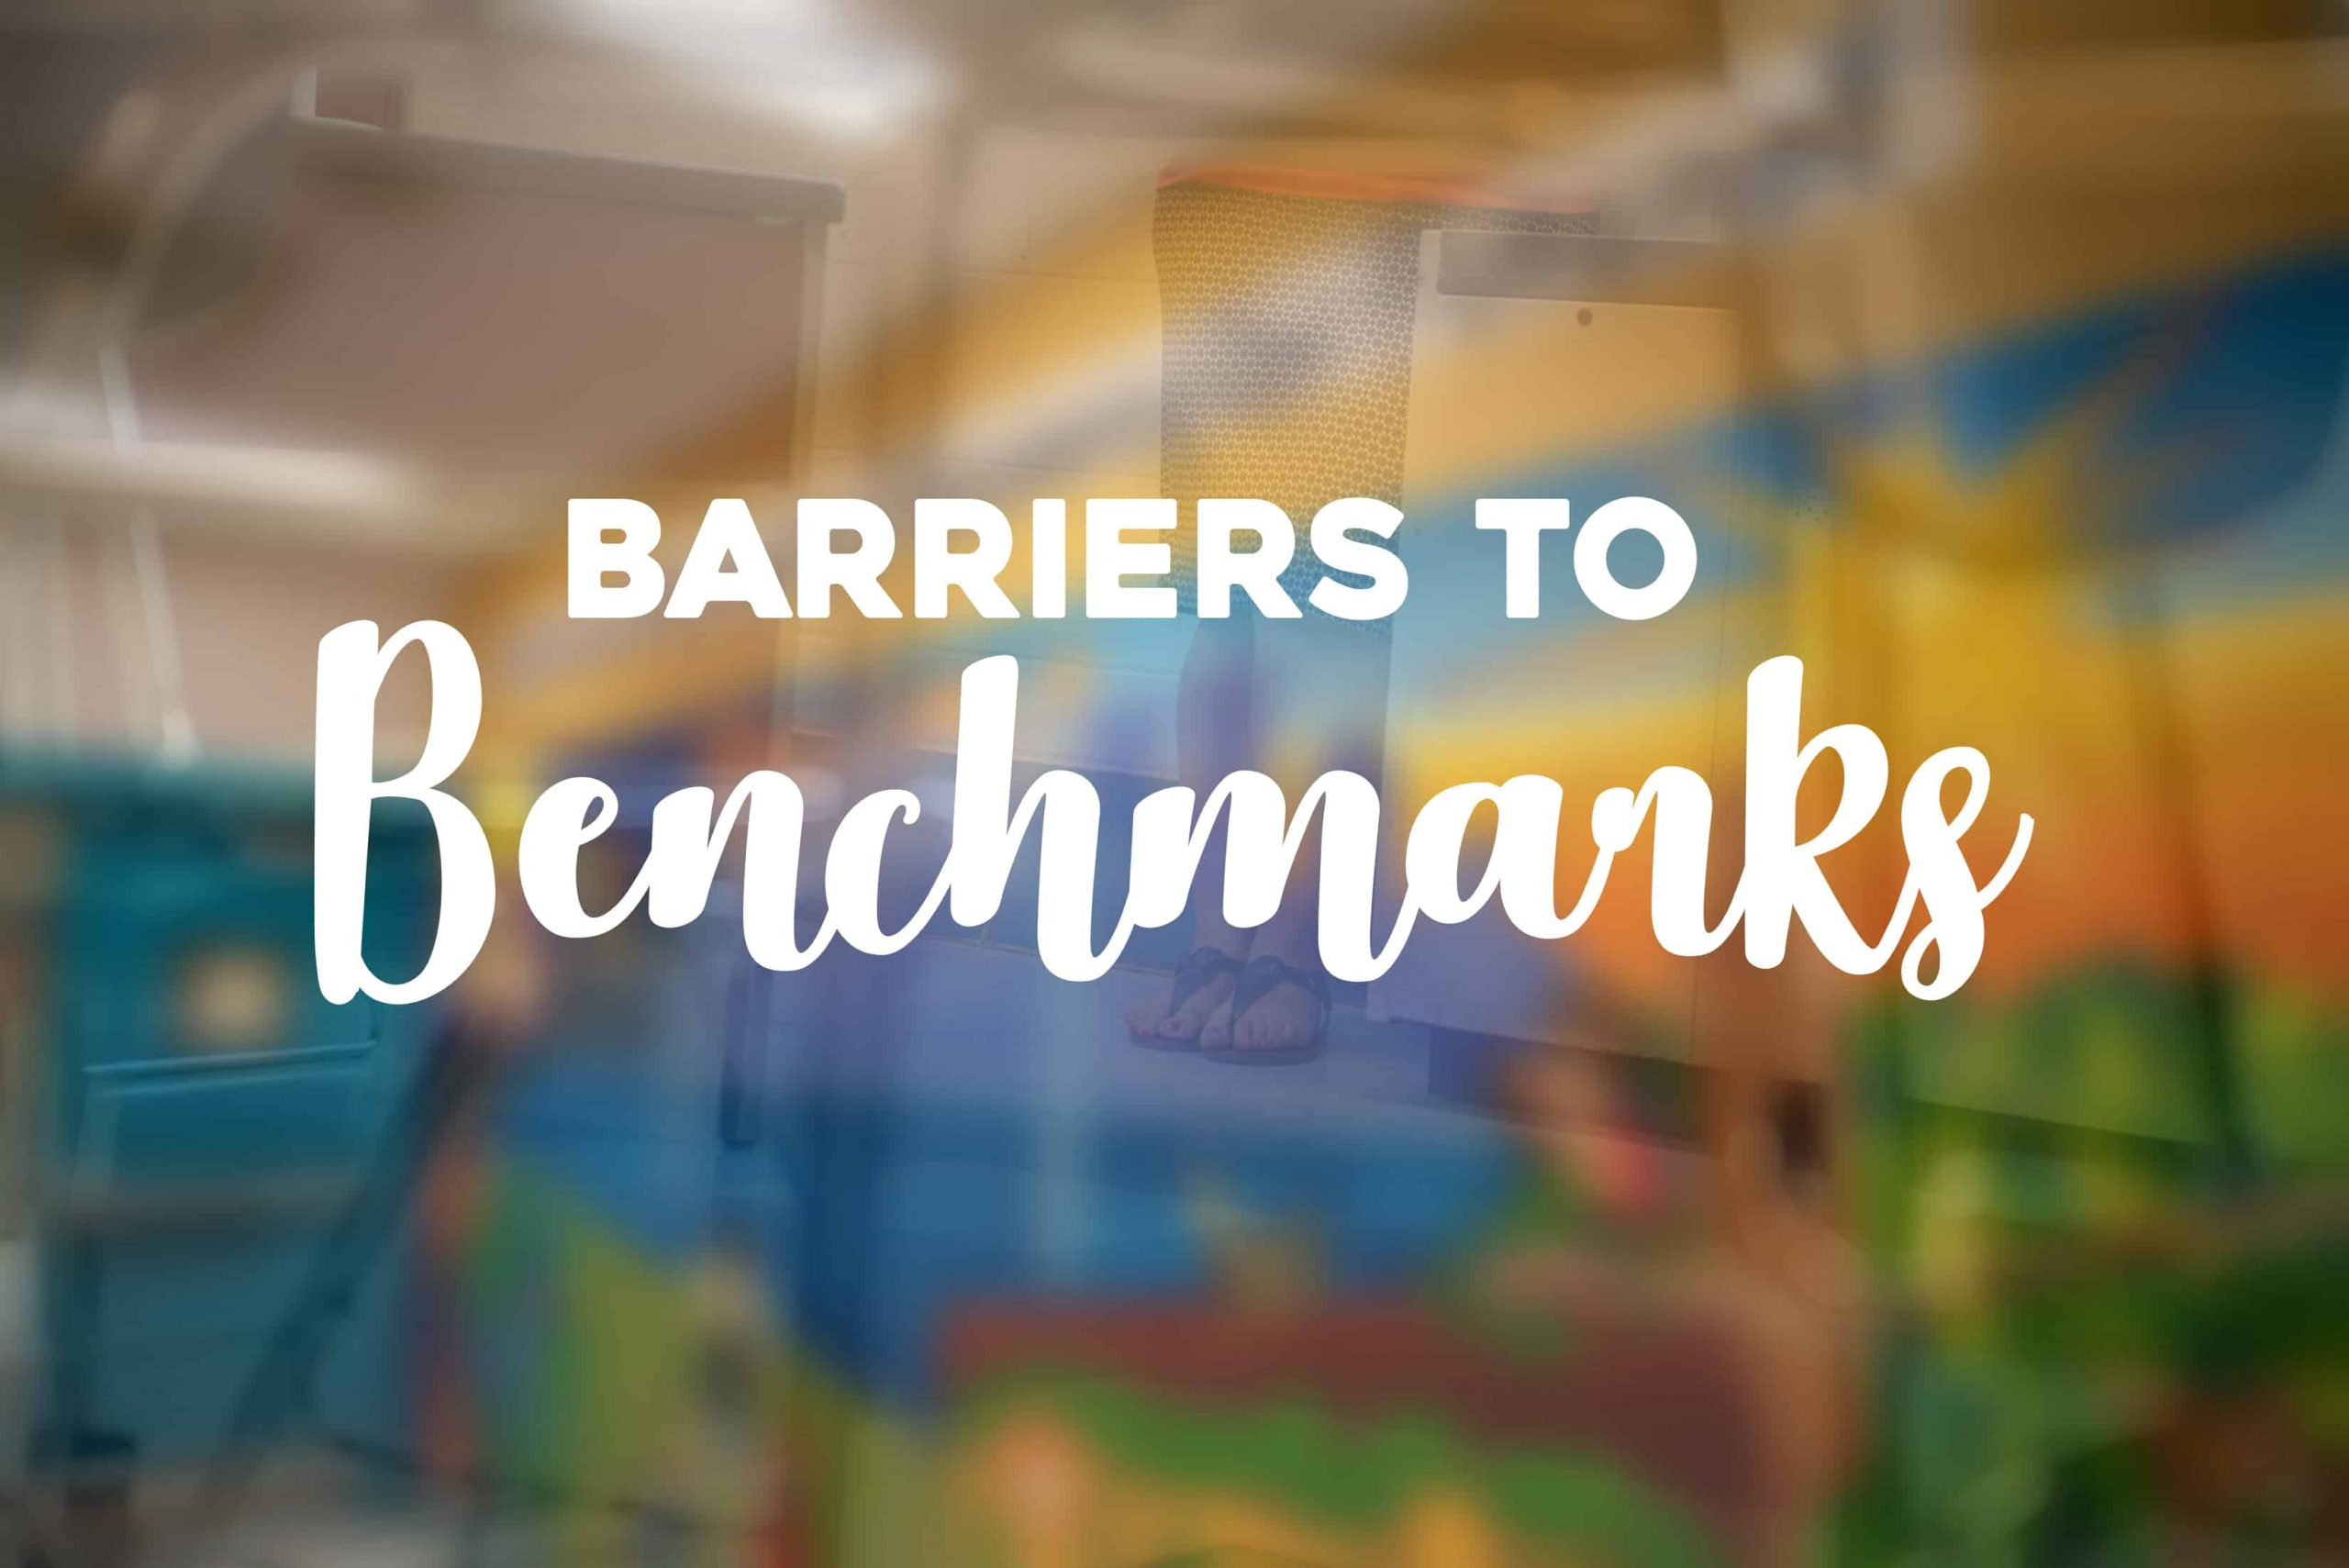 barriers to benchmarks